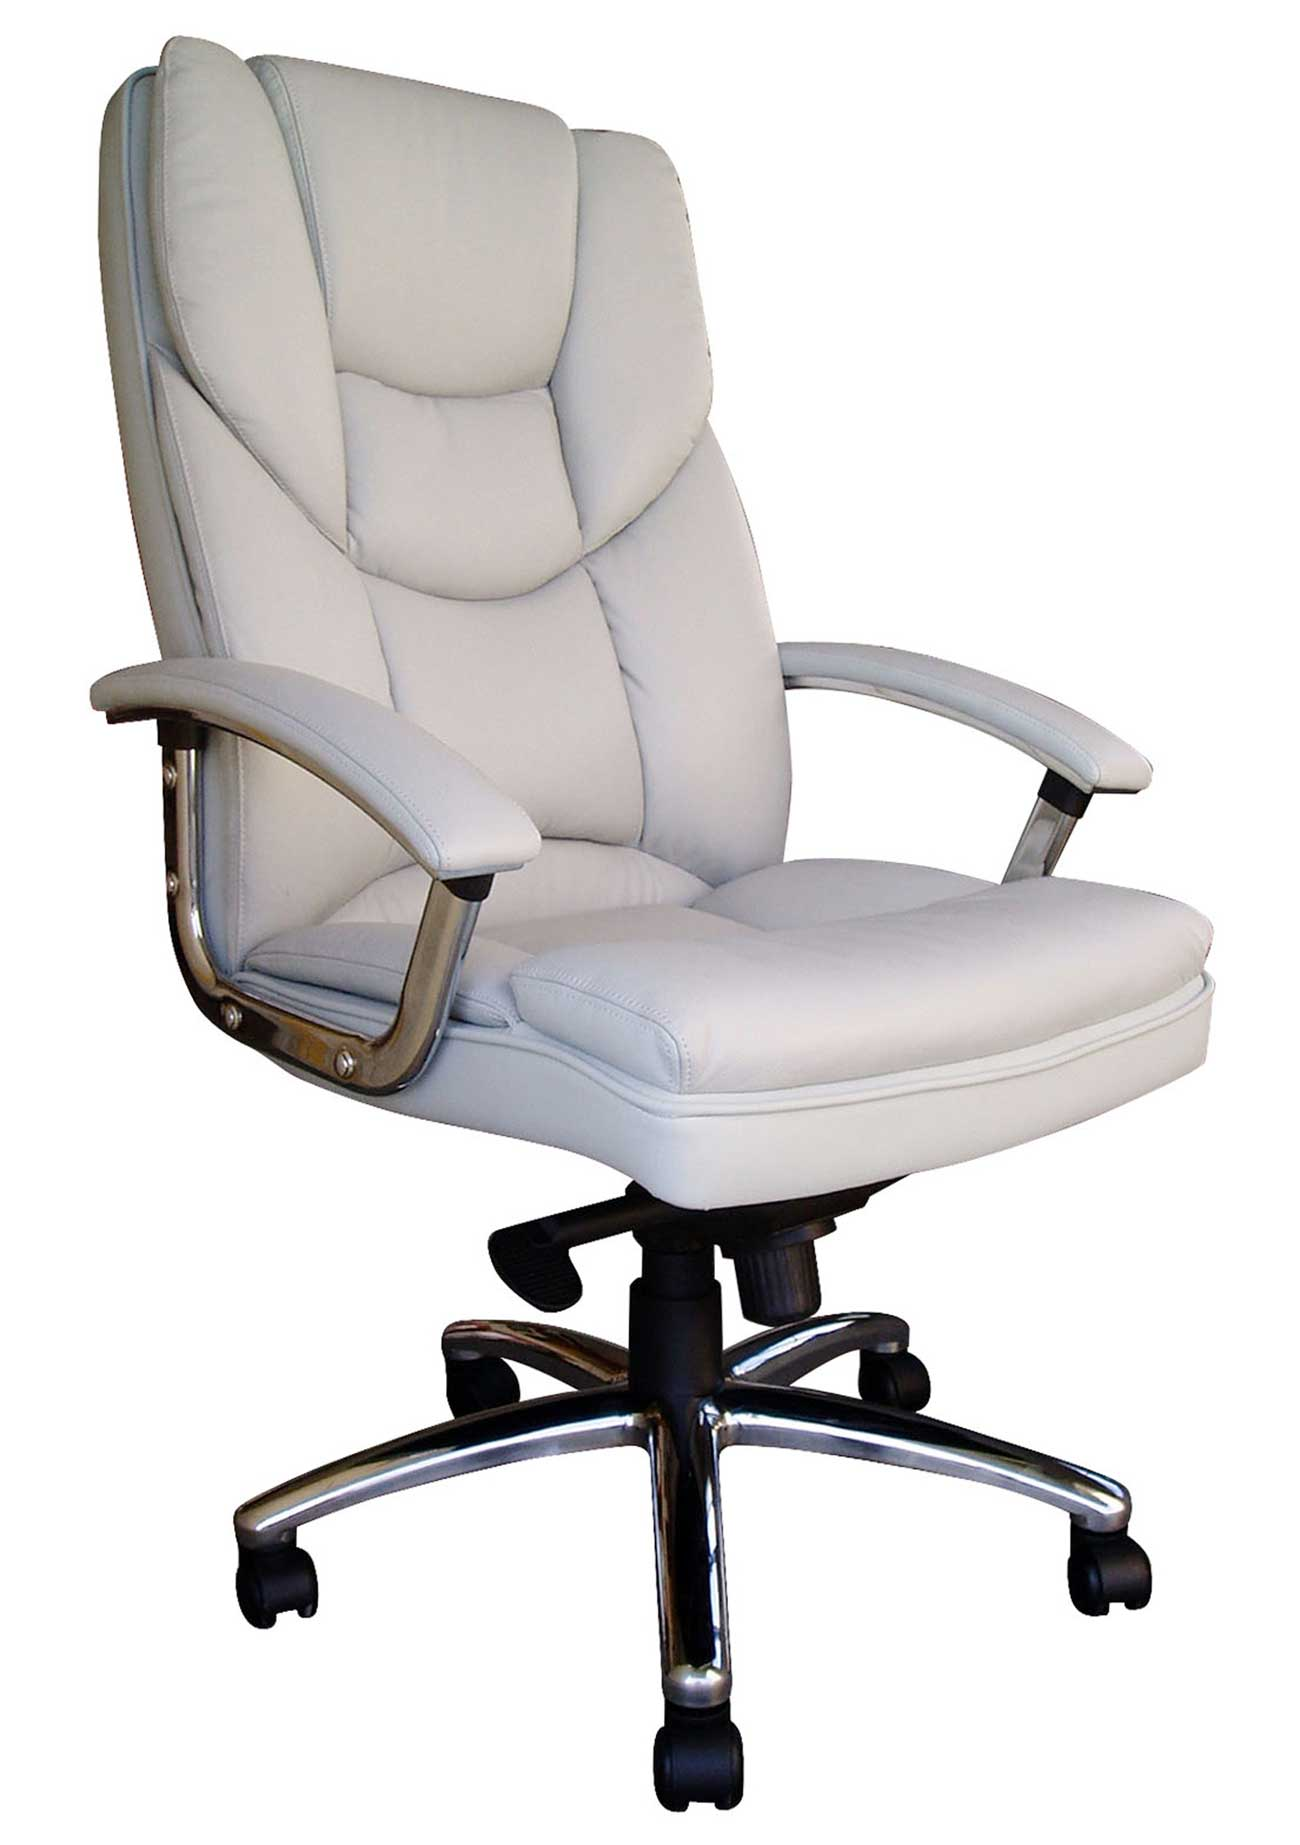 Skyline Luxury White Italian Leather Office Chair